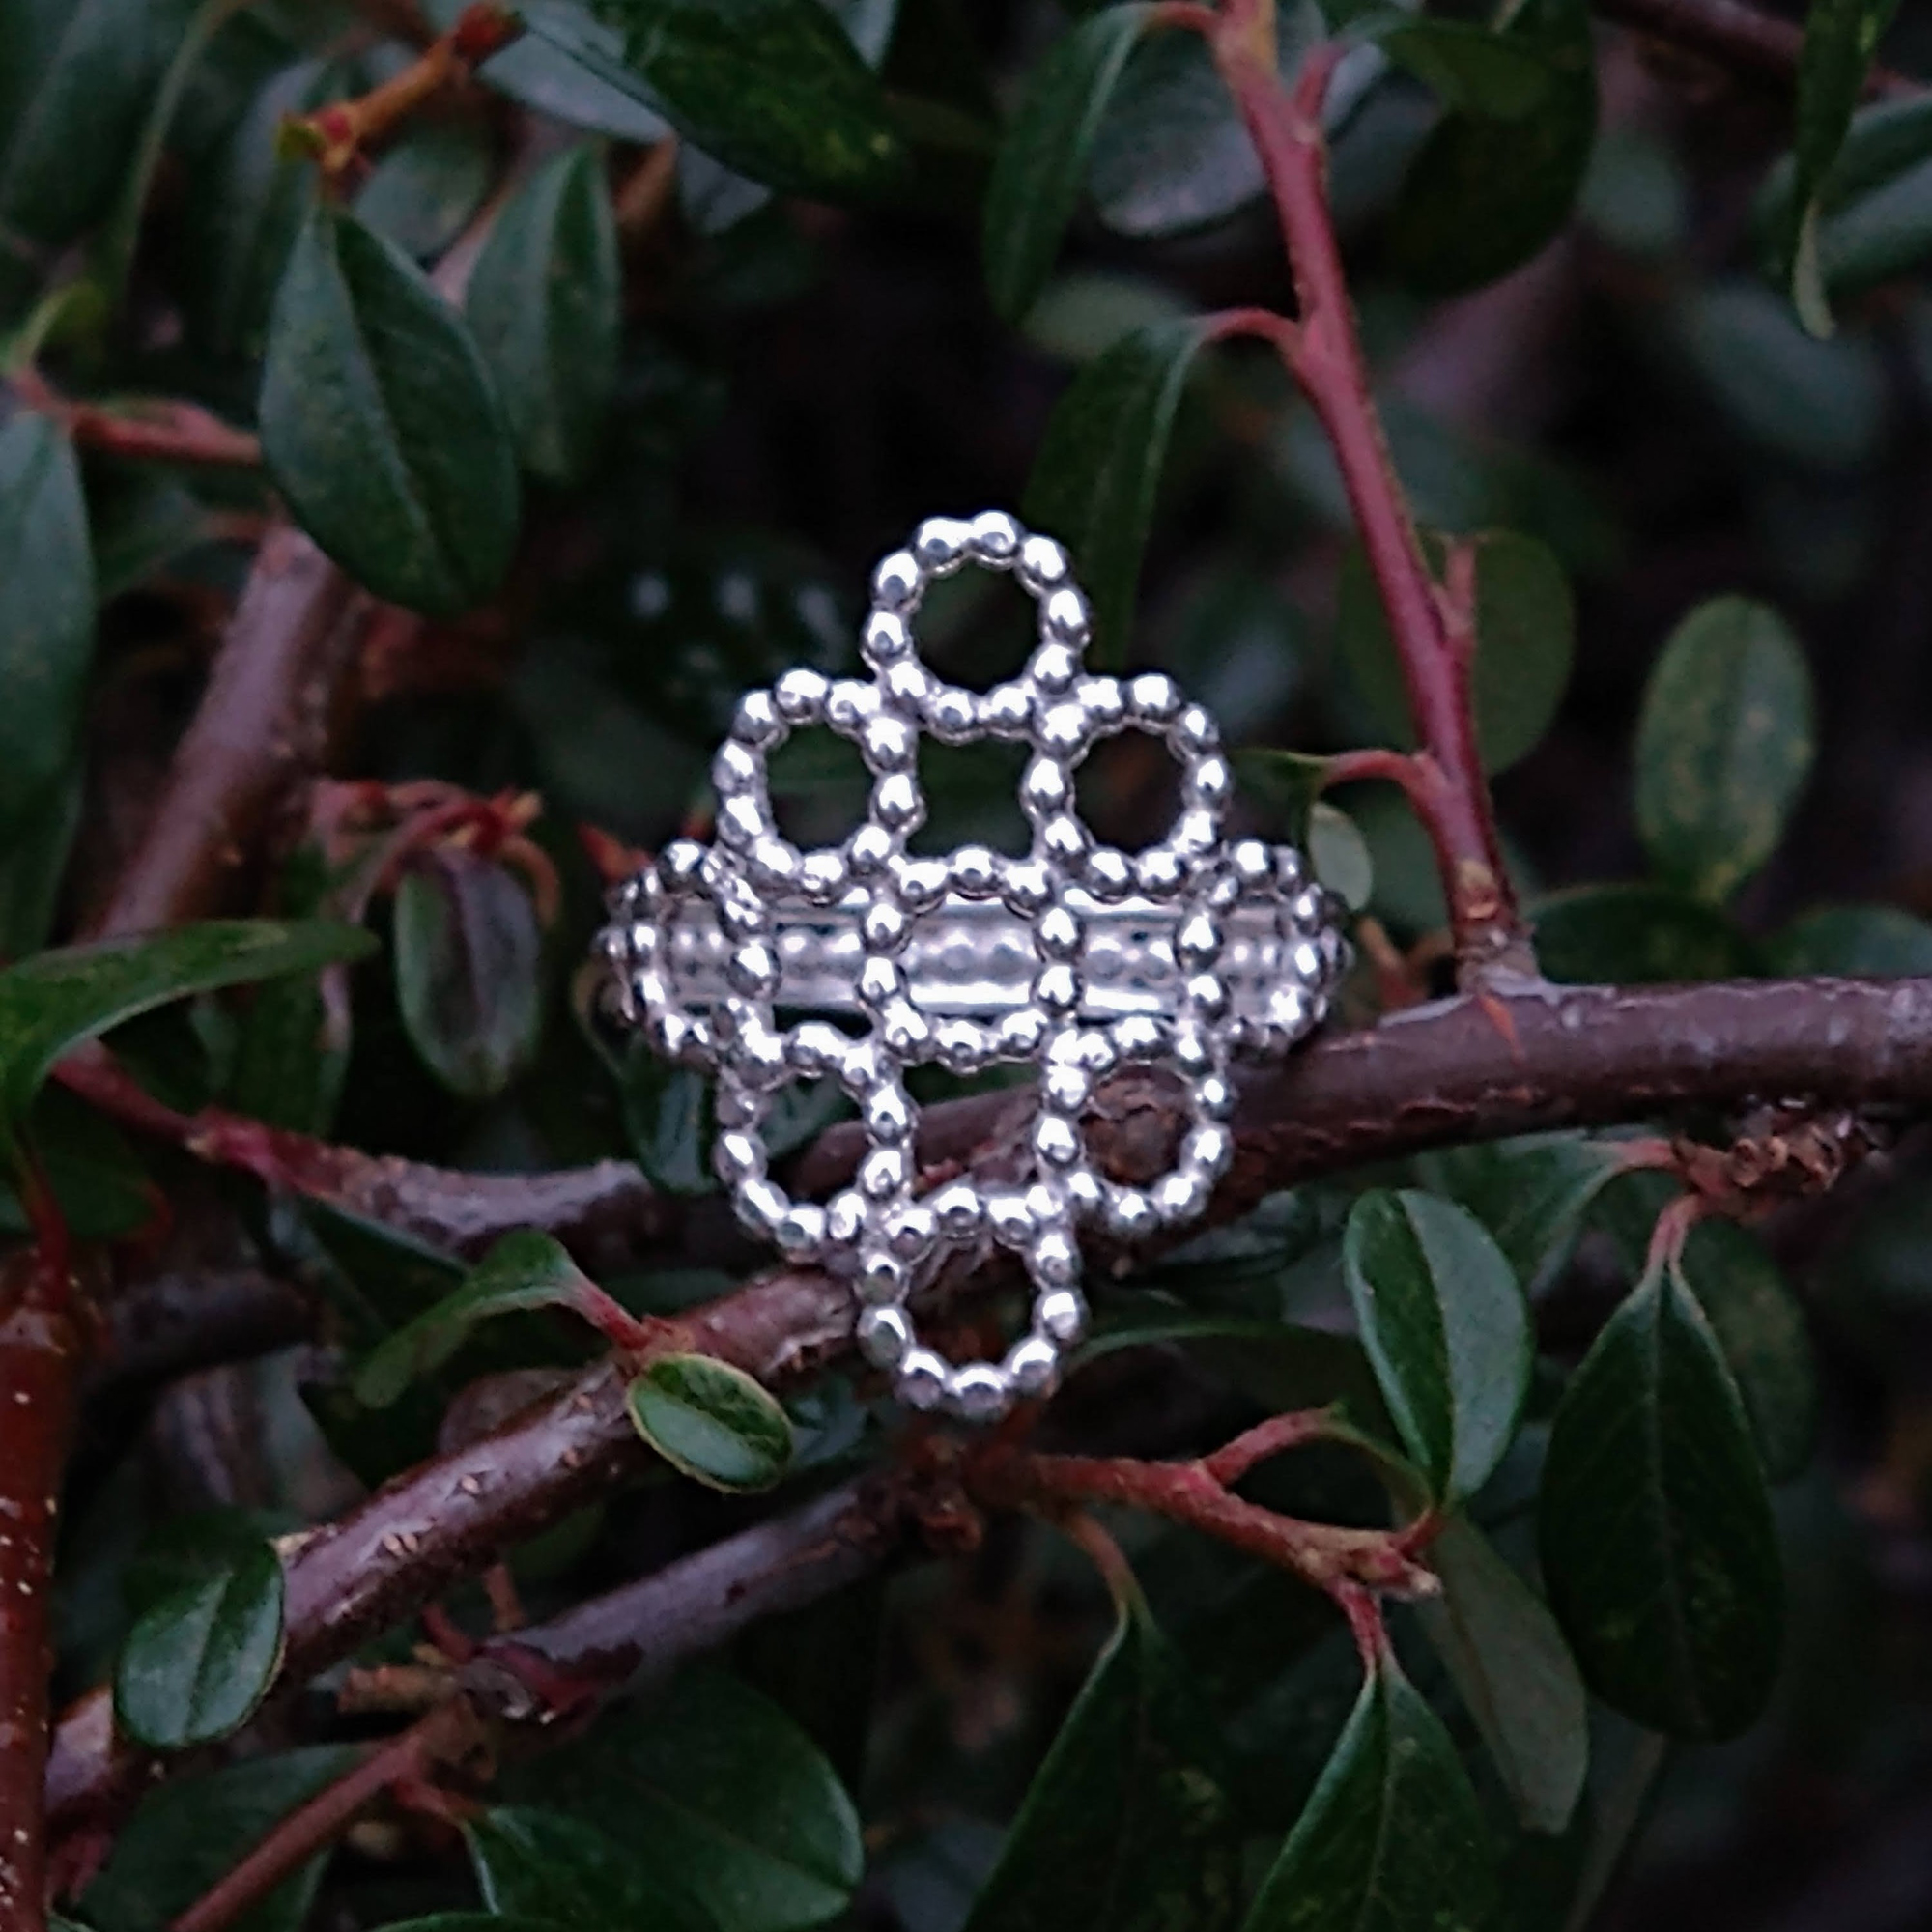 Silver Beaded Quatrefoil Ring - view from the front - against foliage background